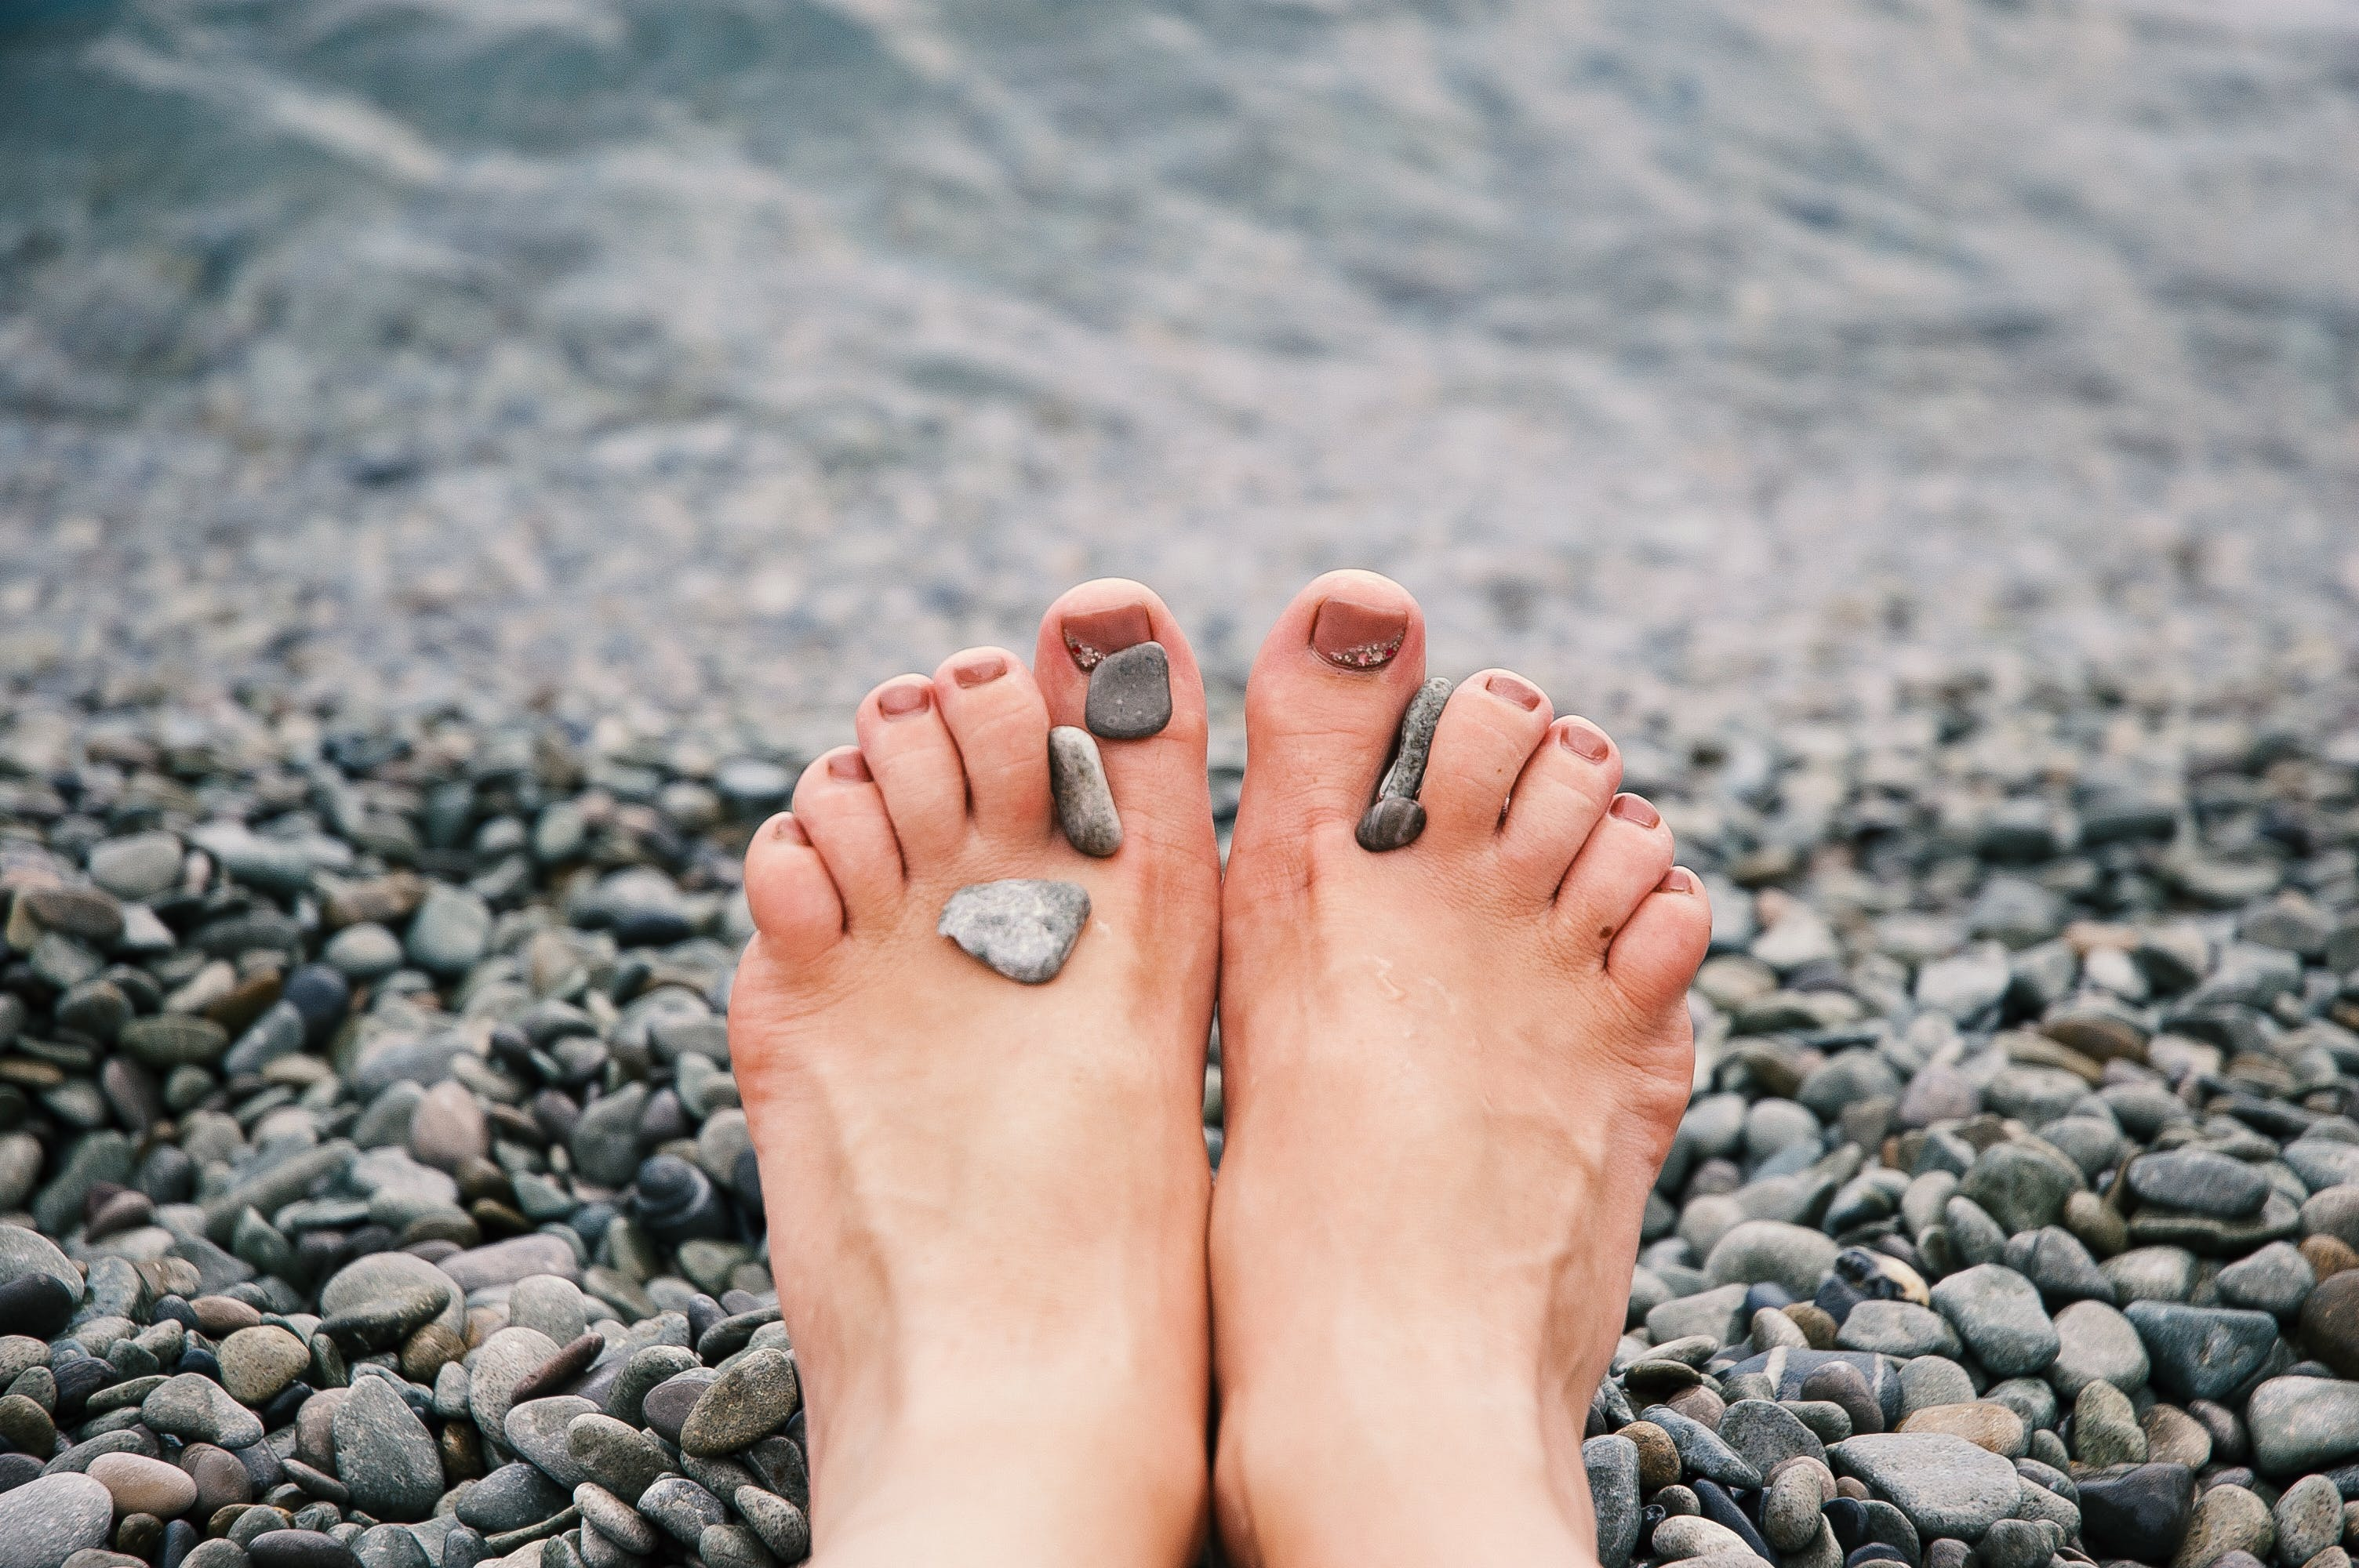 Stones on Woman's Feet